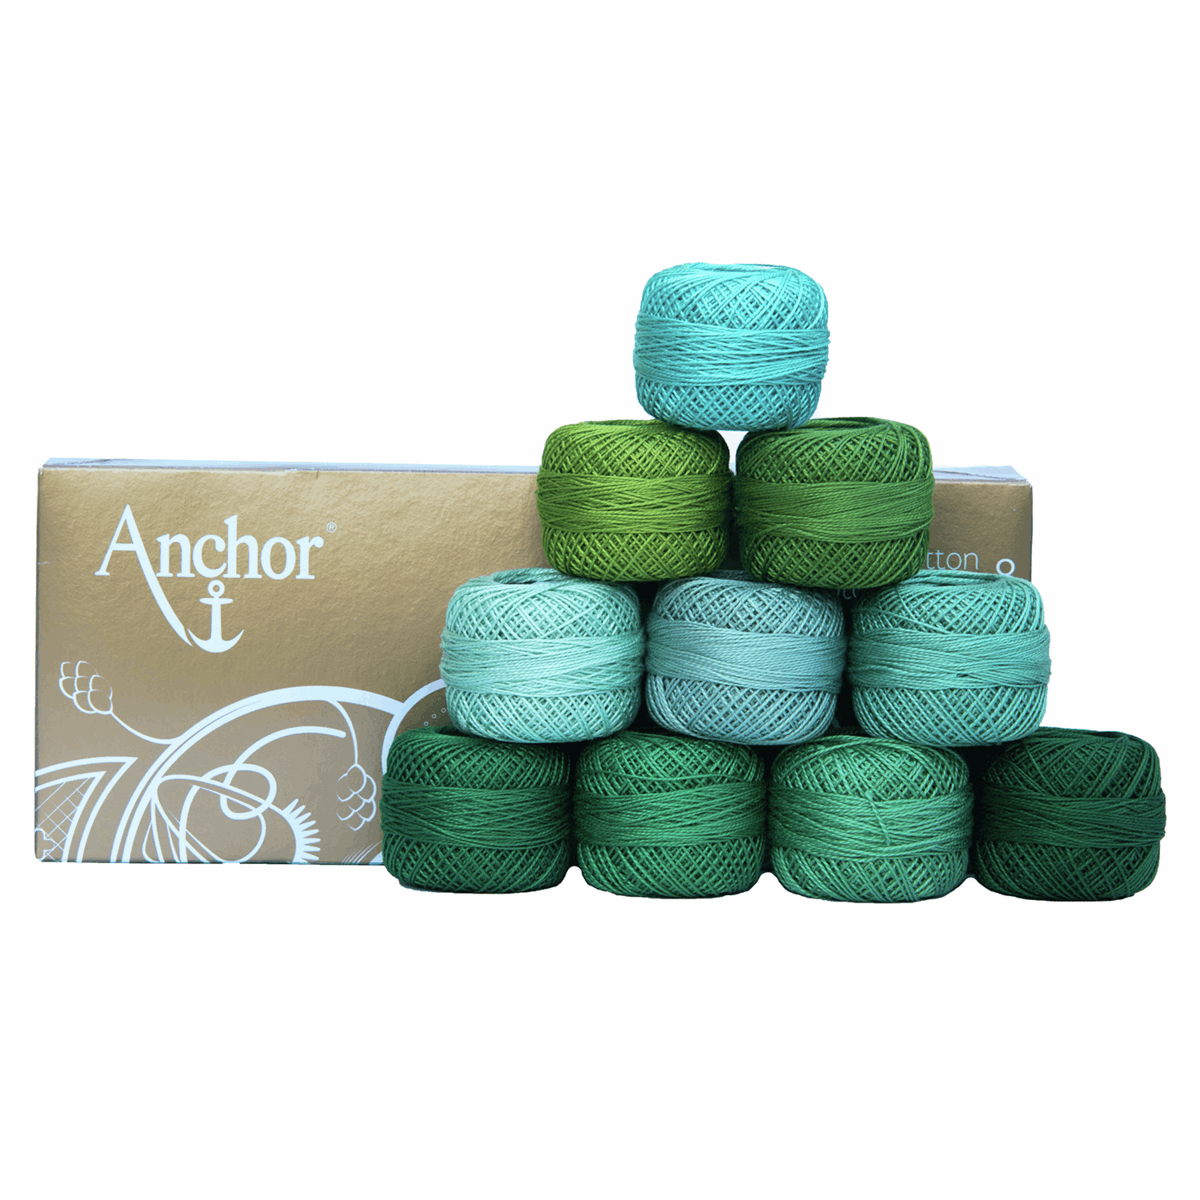 Picture of Pearl Cotton 8: Assortment of Green Shades: 10 x 20g Balls